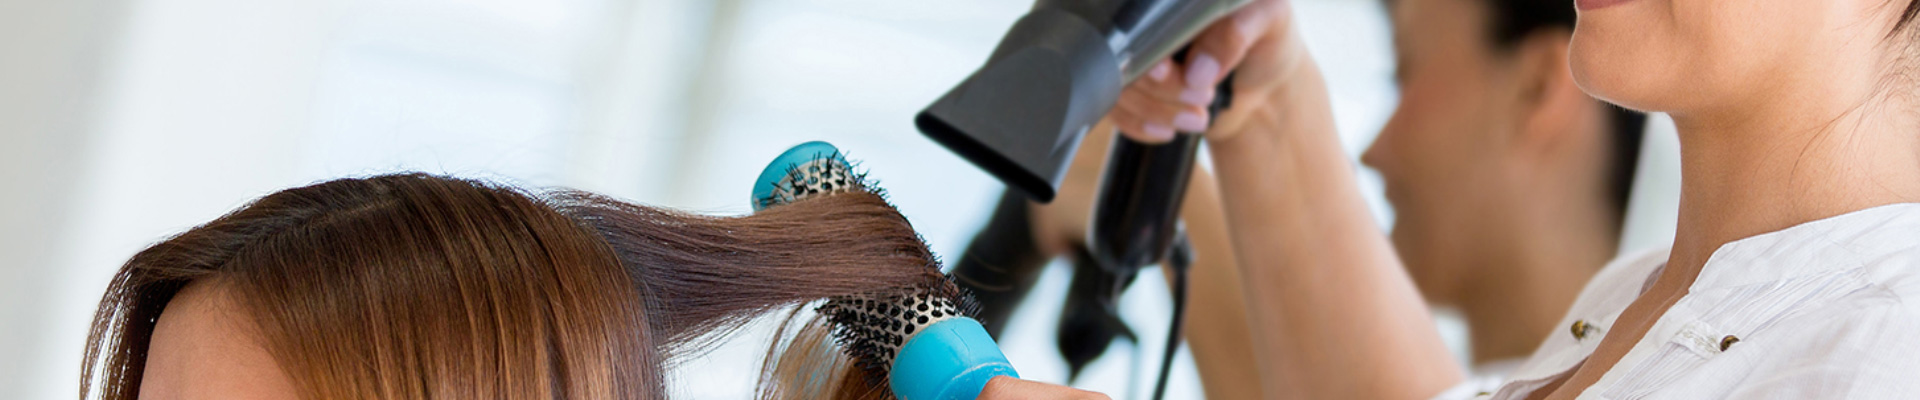 HAIRDRESSING @ LCBT. Join our Hairdressing Courses